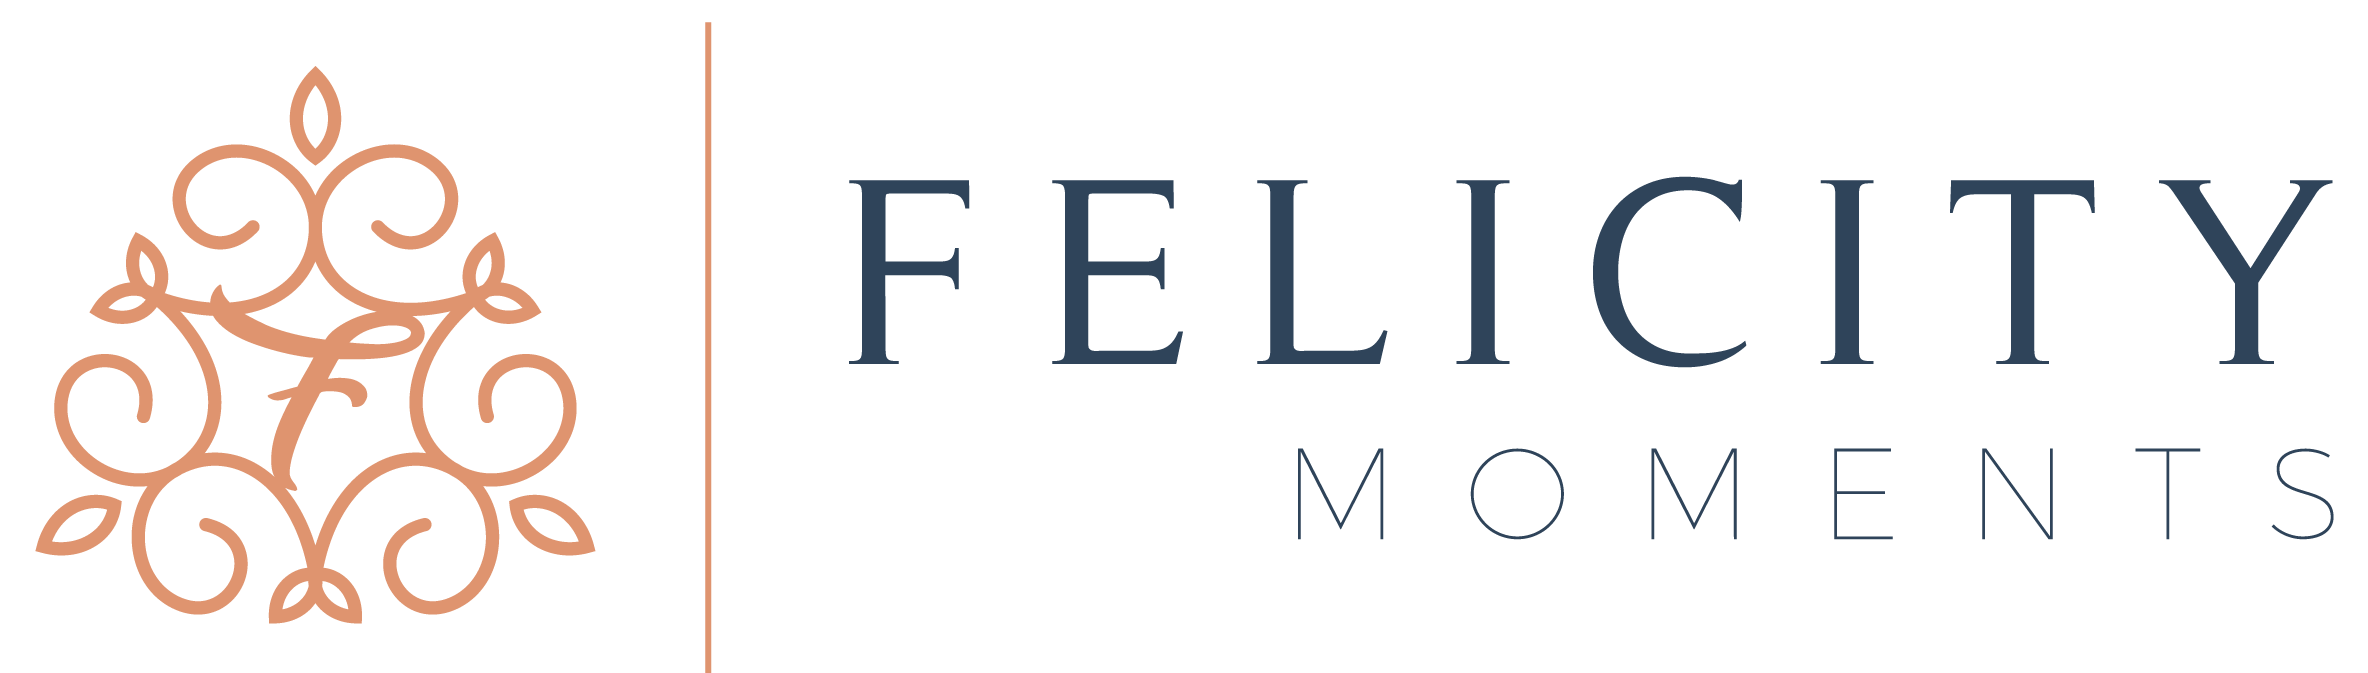 Felicity Moments | Toronto Wedding Videographers and Photographers